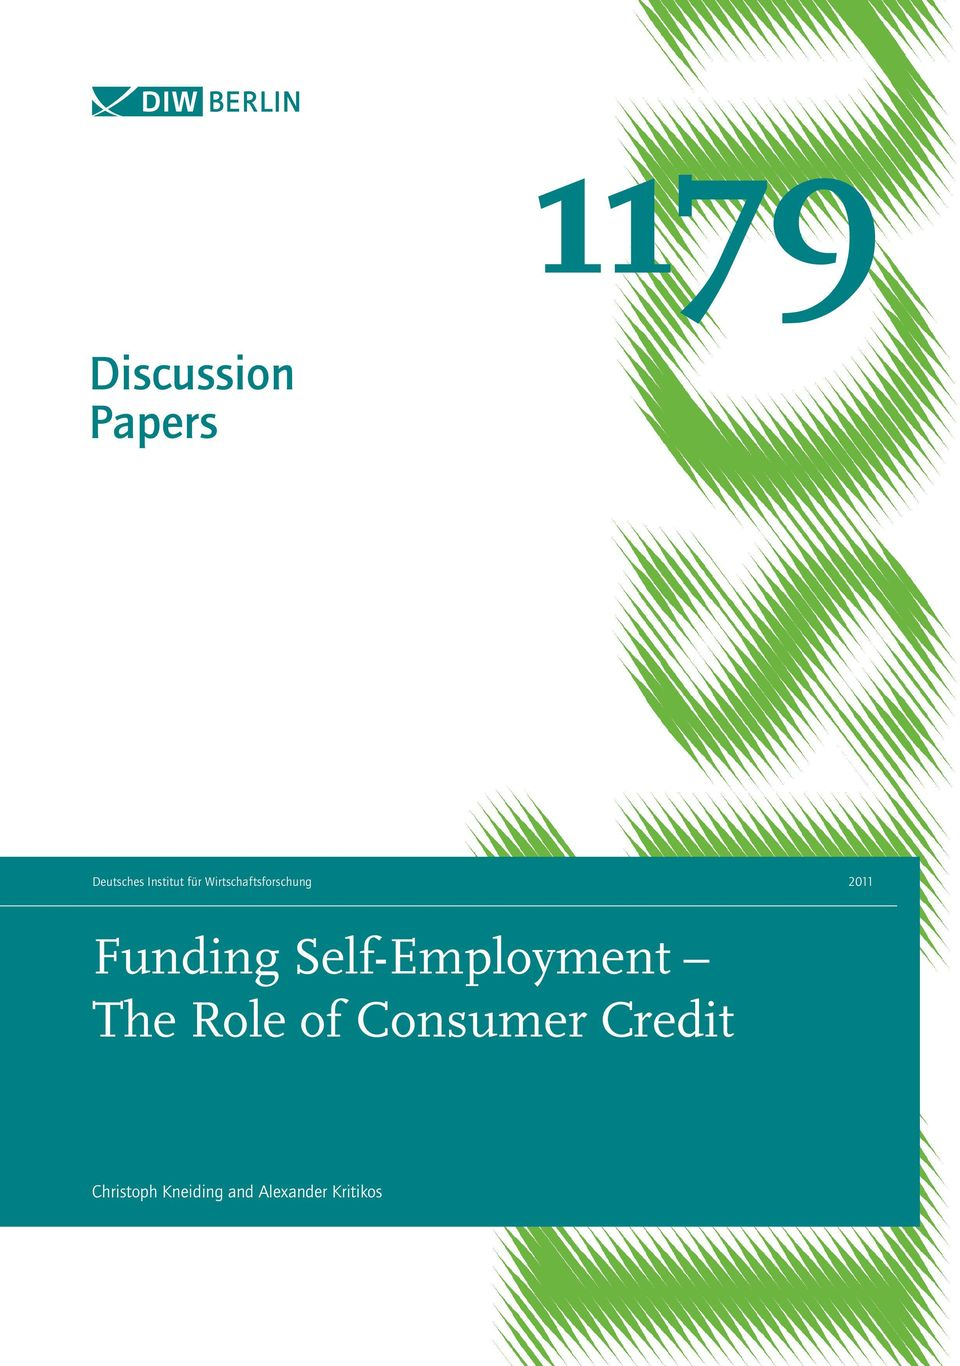 Self-Employment The Role of Consumer